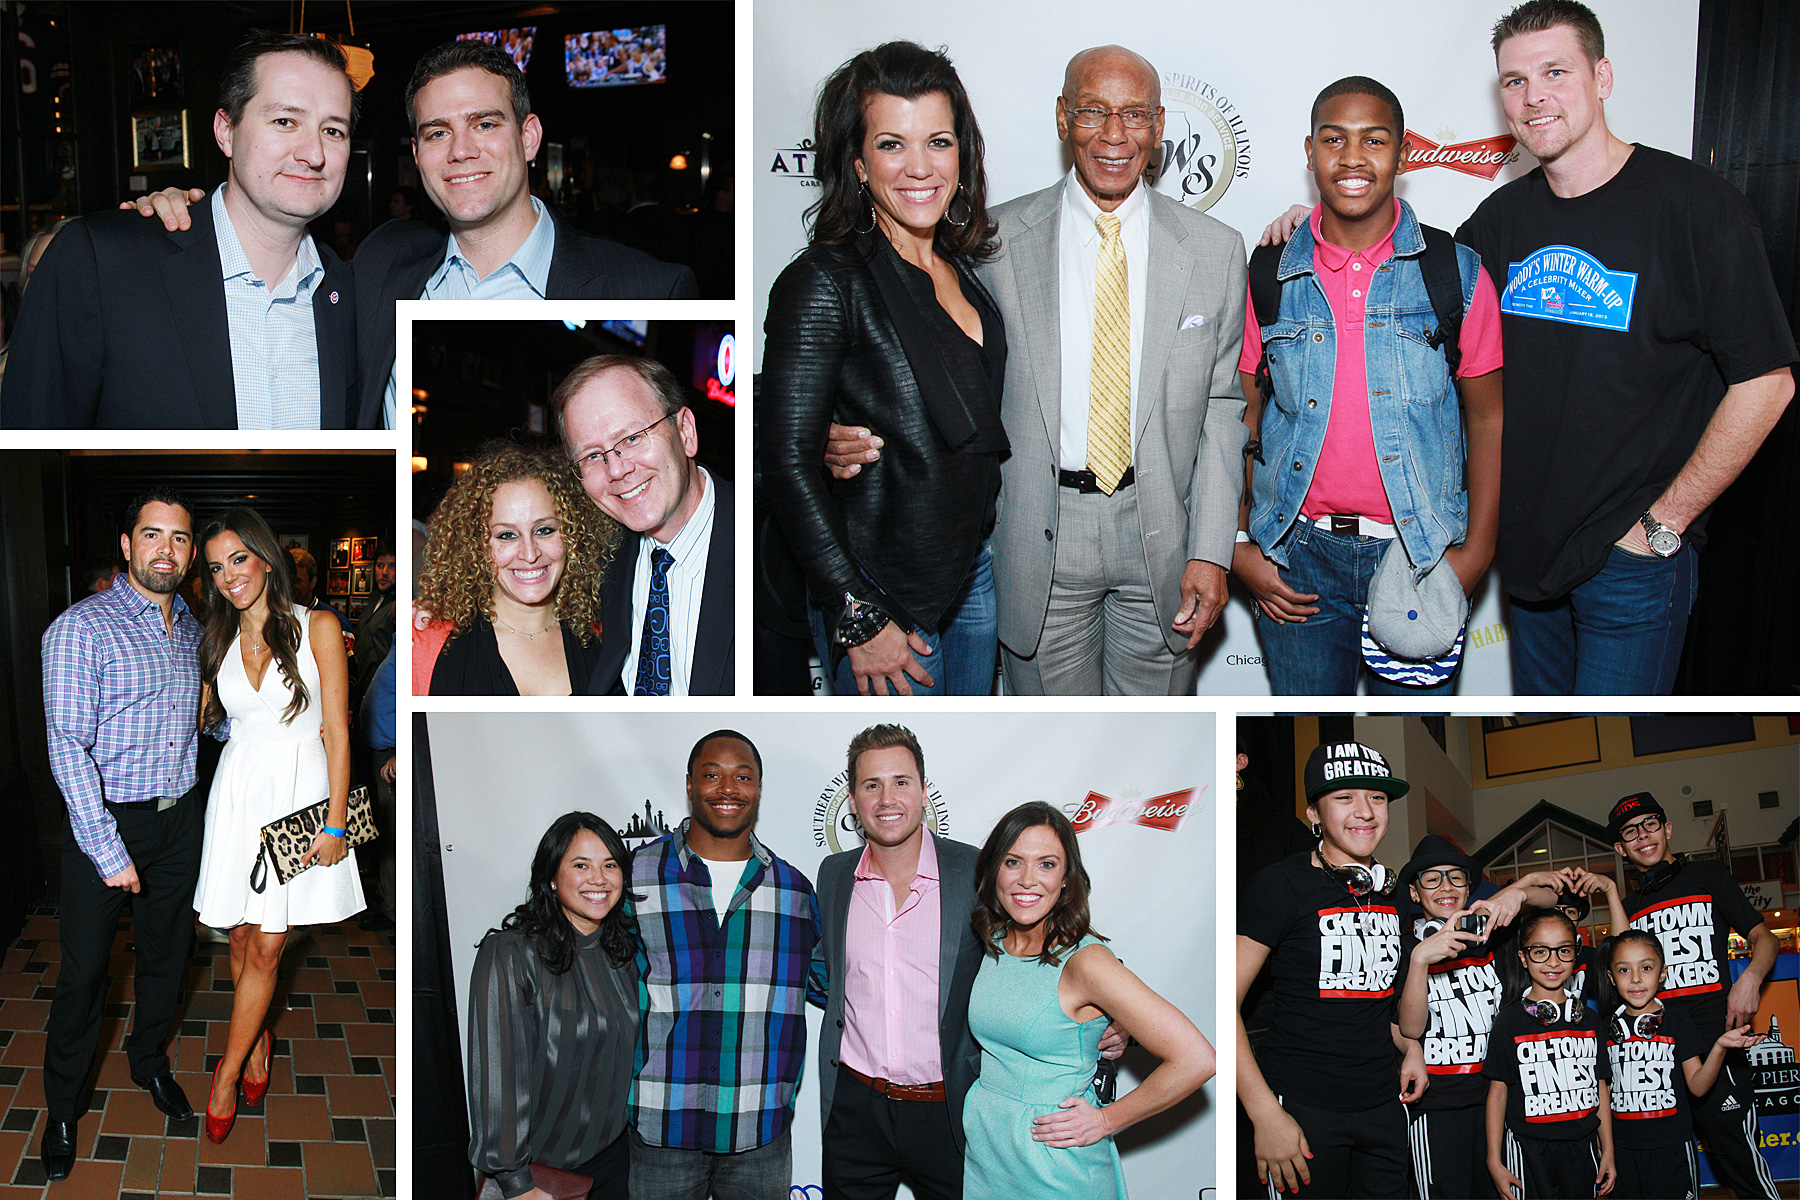 Wood Family Foundation's Woody's Winter Warmup, shot for the Chicago Sun-Times SPLASH lifestyle magazine